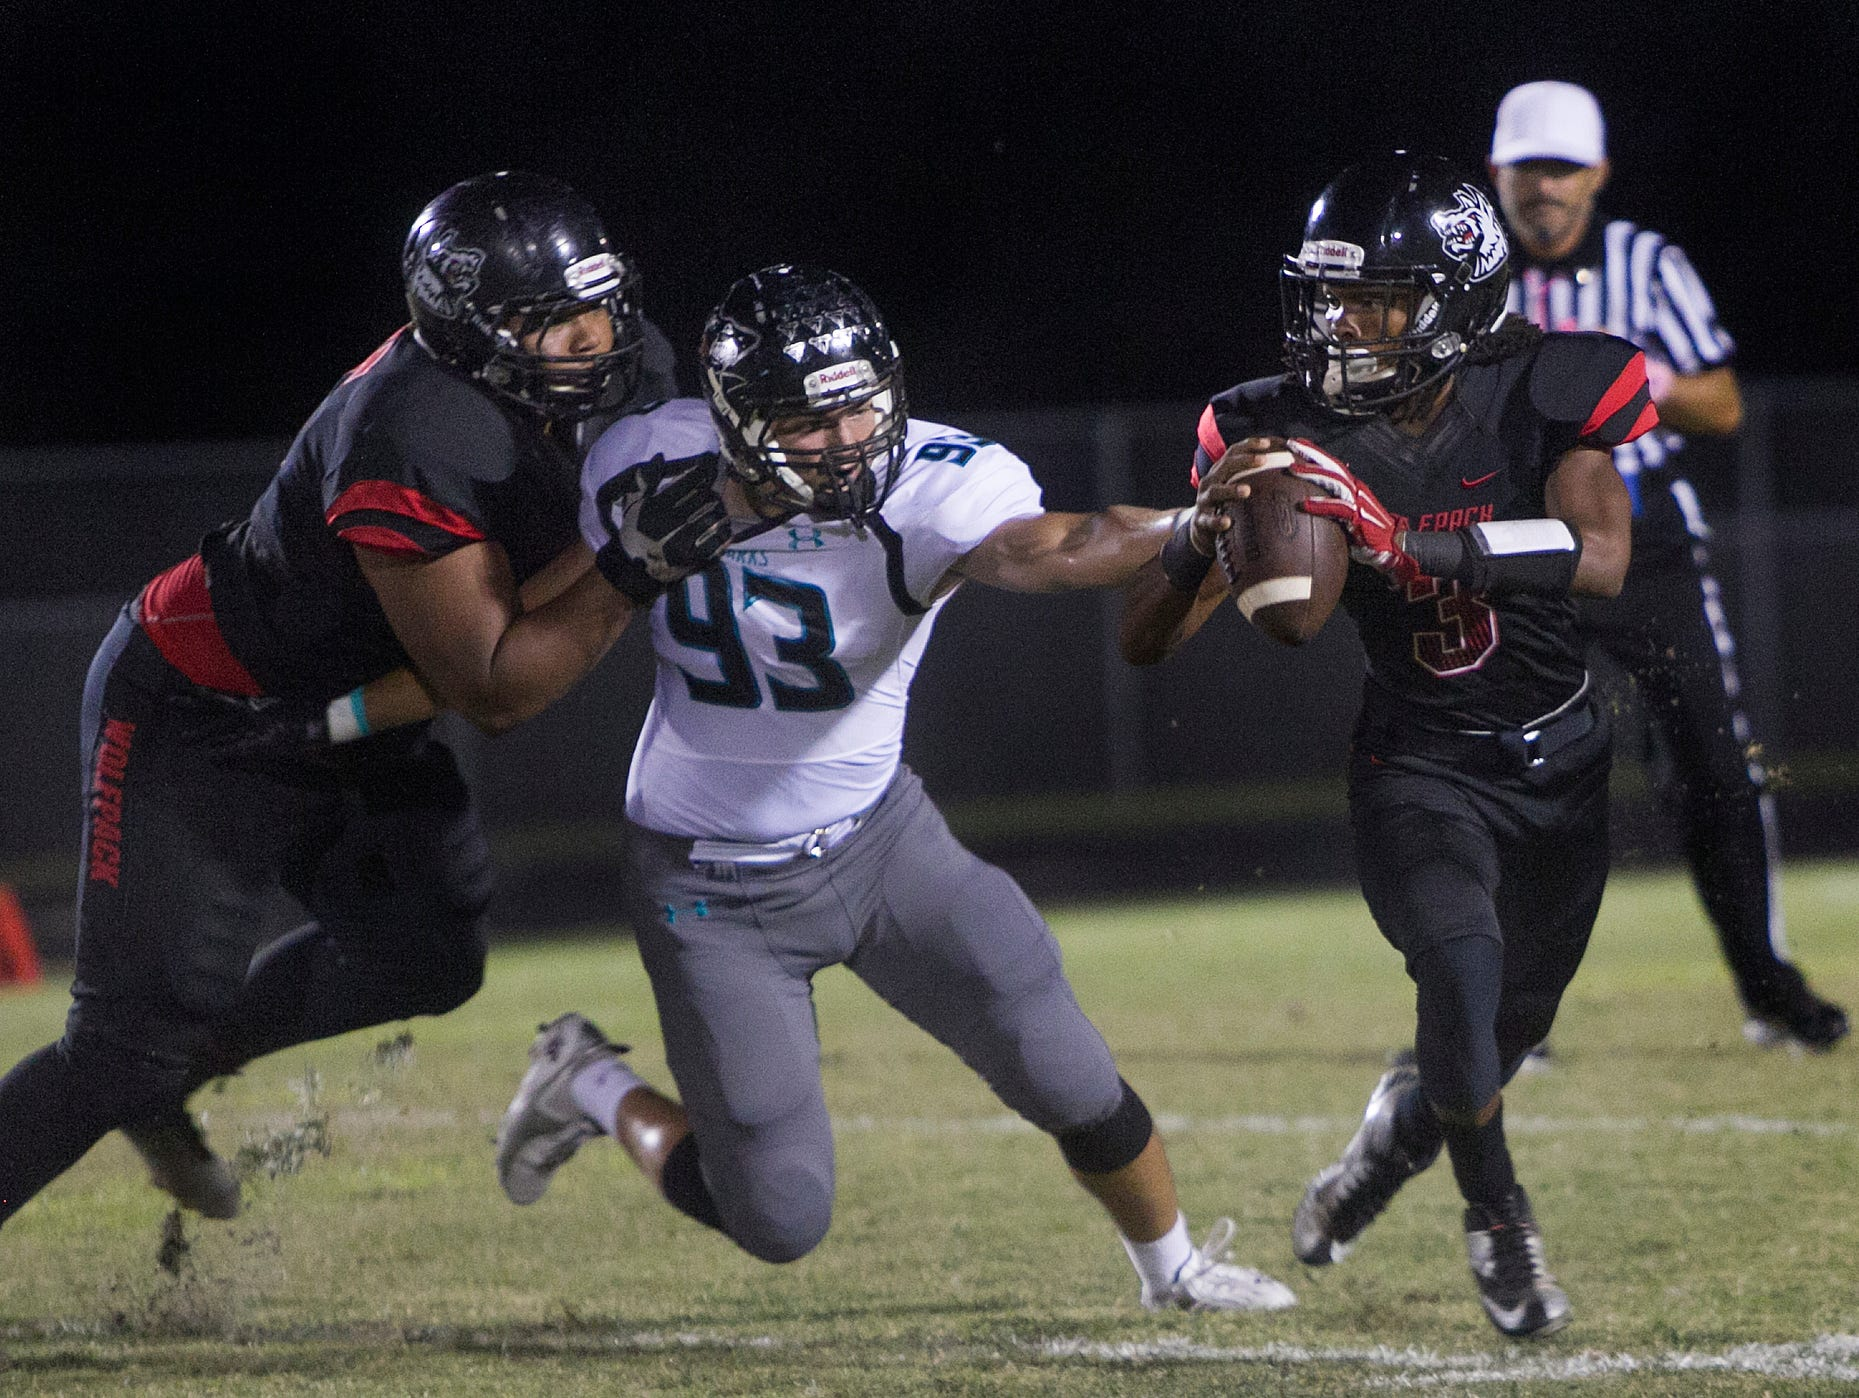 South Fort Myers and Gulf Coast are among the 11 Lee and Collier county teams to qualify for the state playoffs.